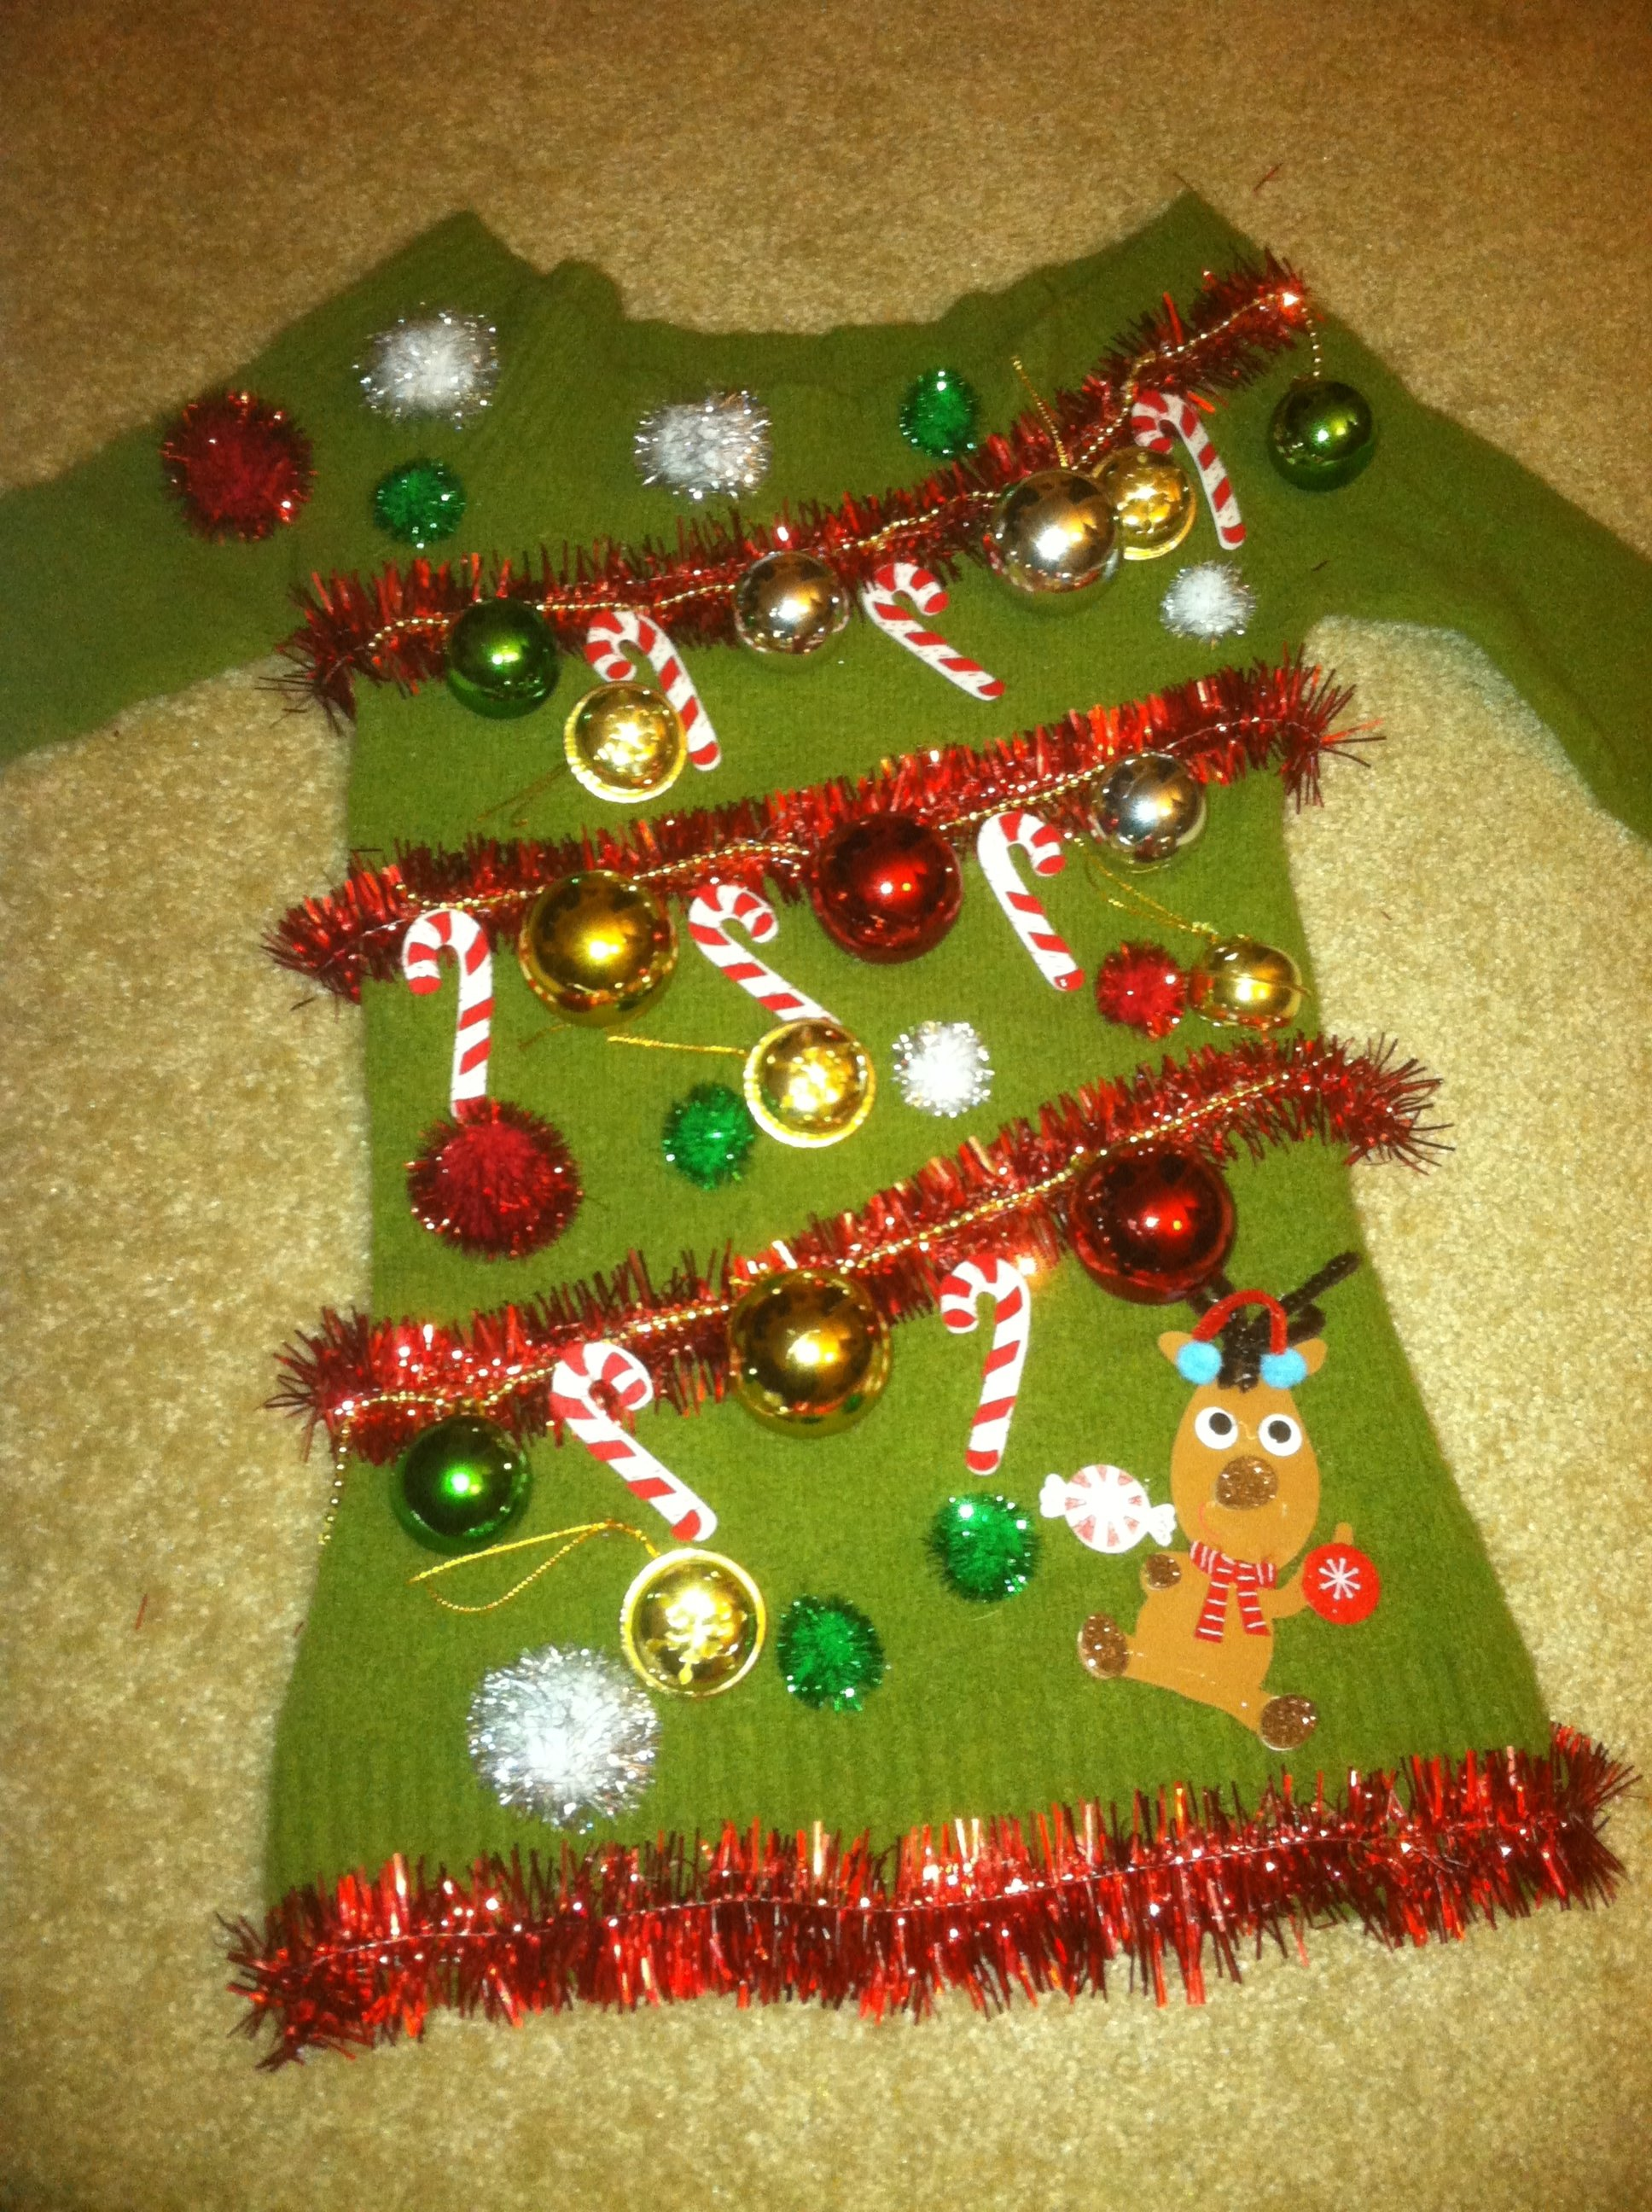 10 Stunning Ugly Christmas Sweater Ideas Homemade diy ugly christmas sweaters that prove youre awesome sweater ideas 1